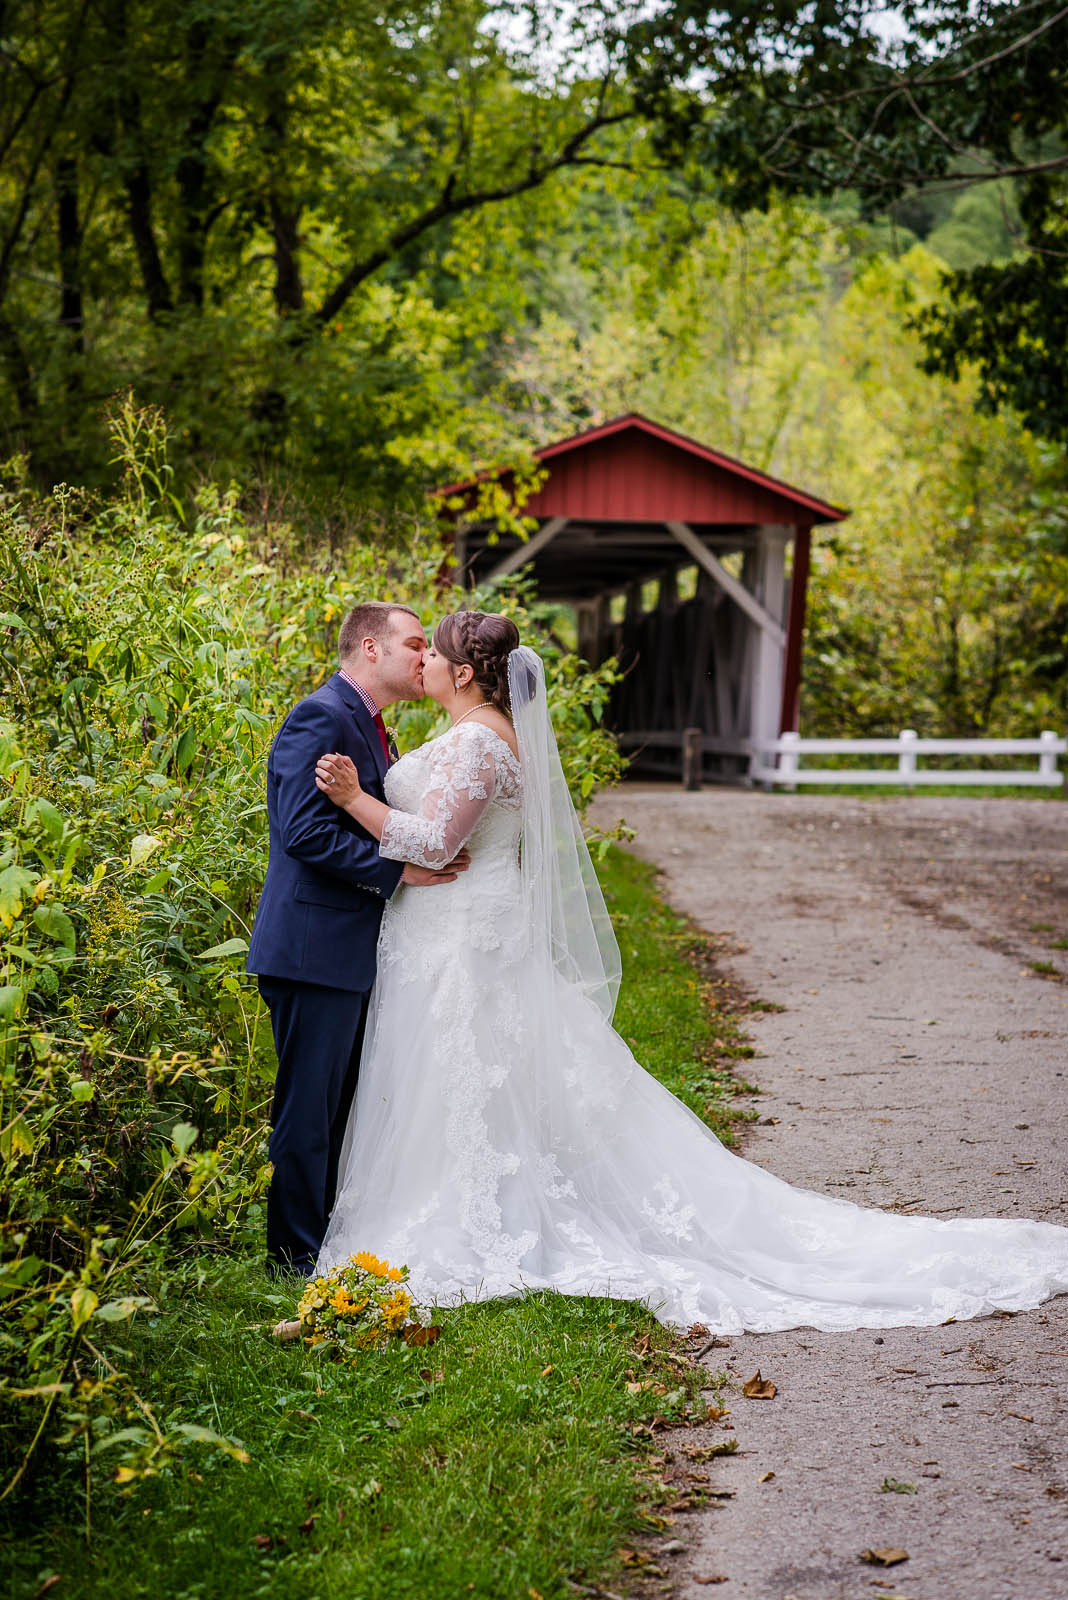 Eric_and_Christy_Photography_Blog_Wedding_Stacey_Geoff-45